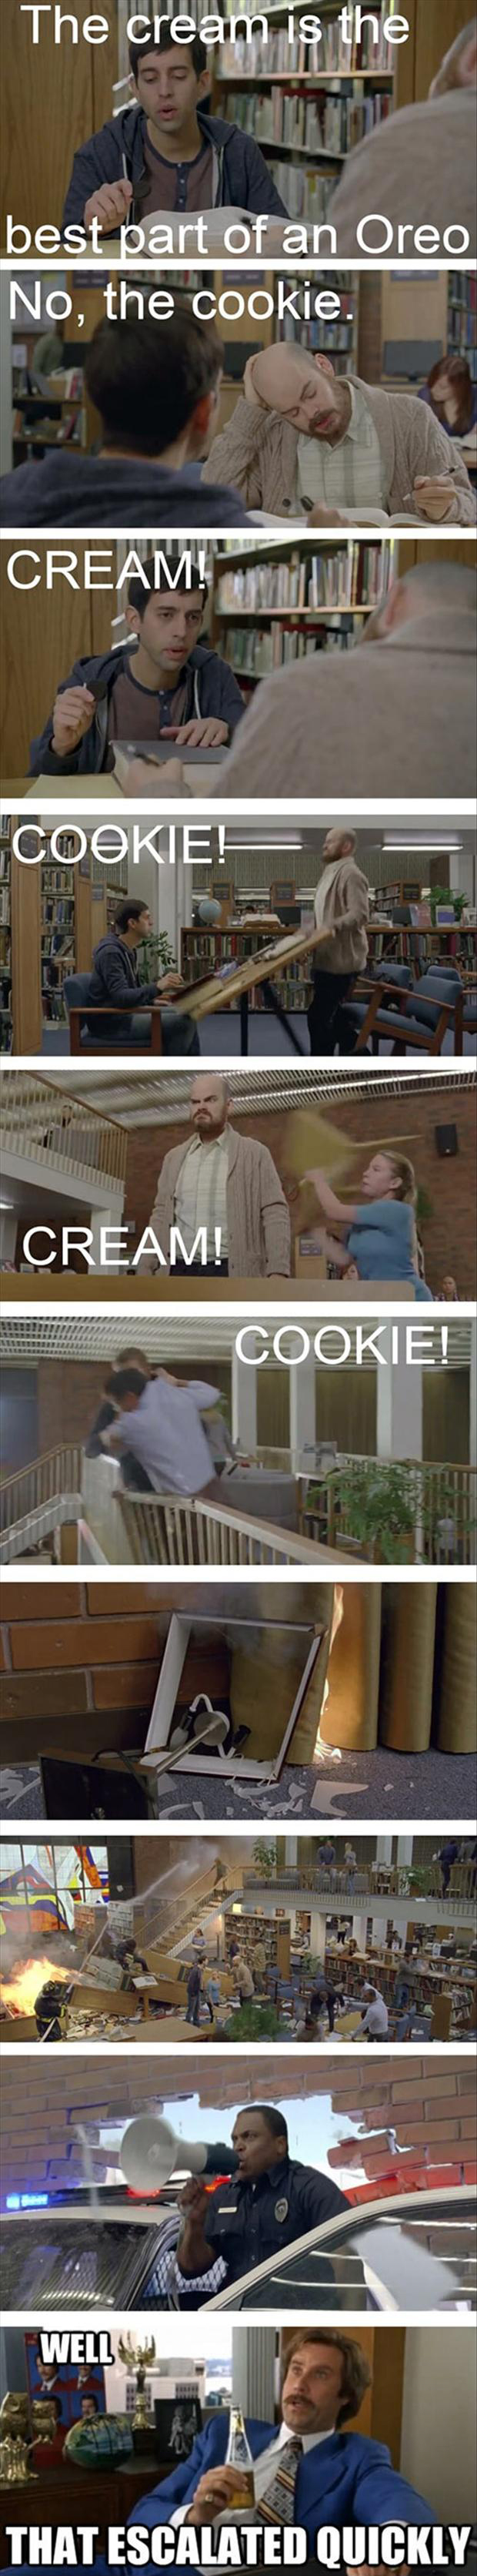 best part of an oreo commercial, funny pictures